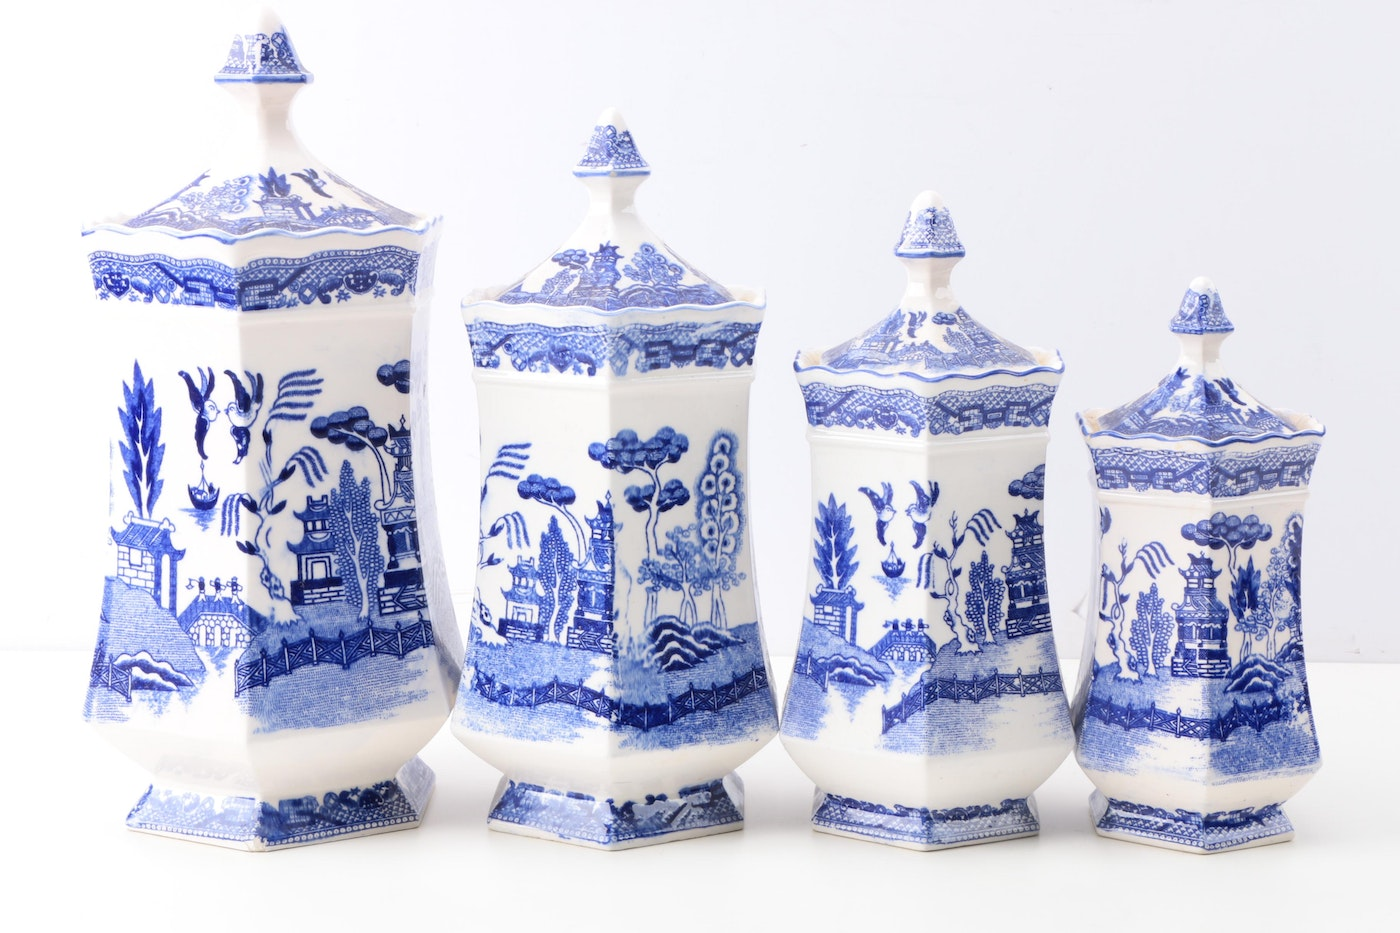 Quot Blue Willow Quot Transferware Ceramic Canisters And Cobalt Blue Glass Vase Ebth